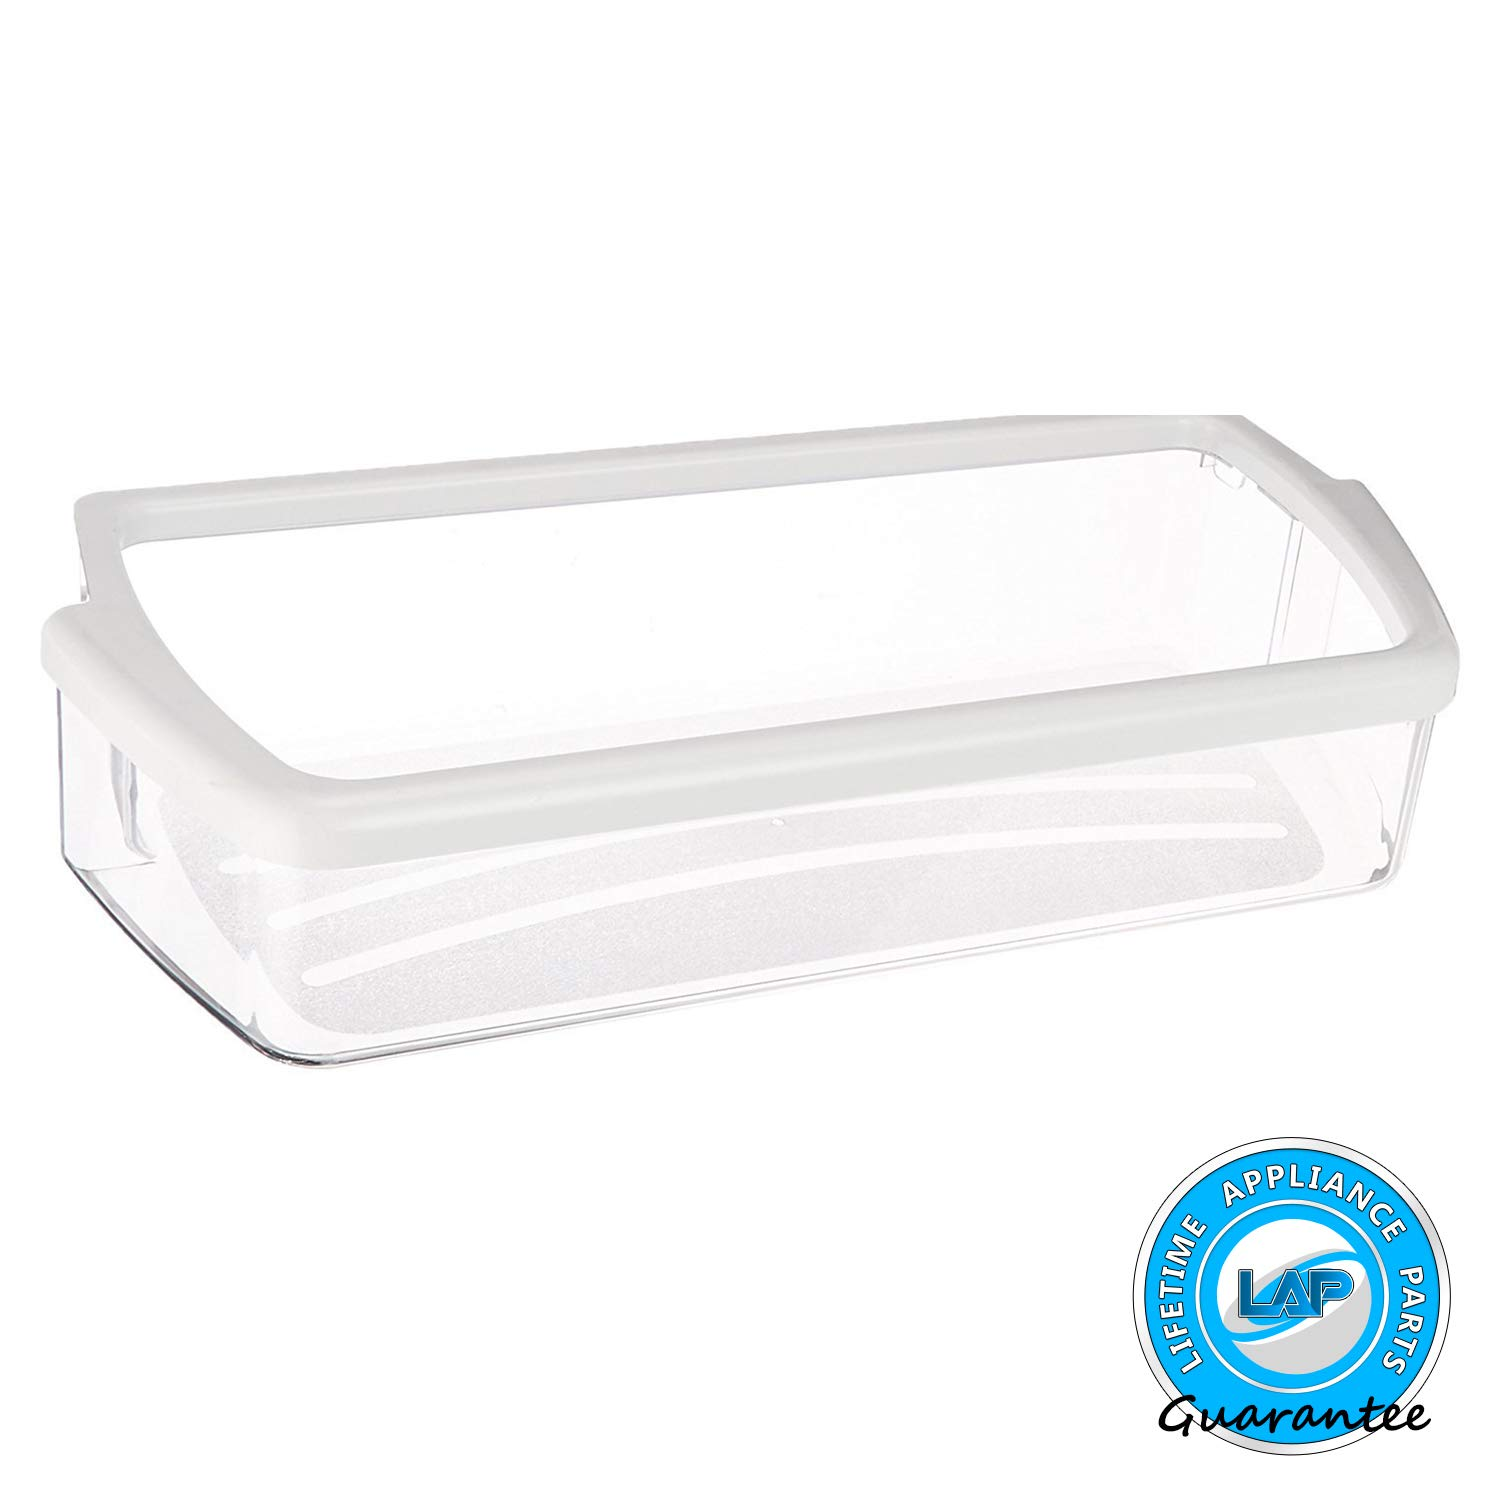 Ultra Durable W10321304 Door Shelf Bin for Whirlpool Refrigerator - WPW10321304